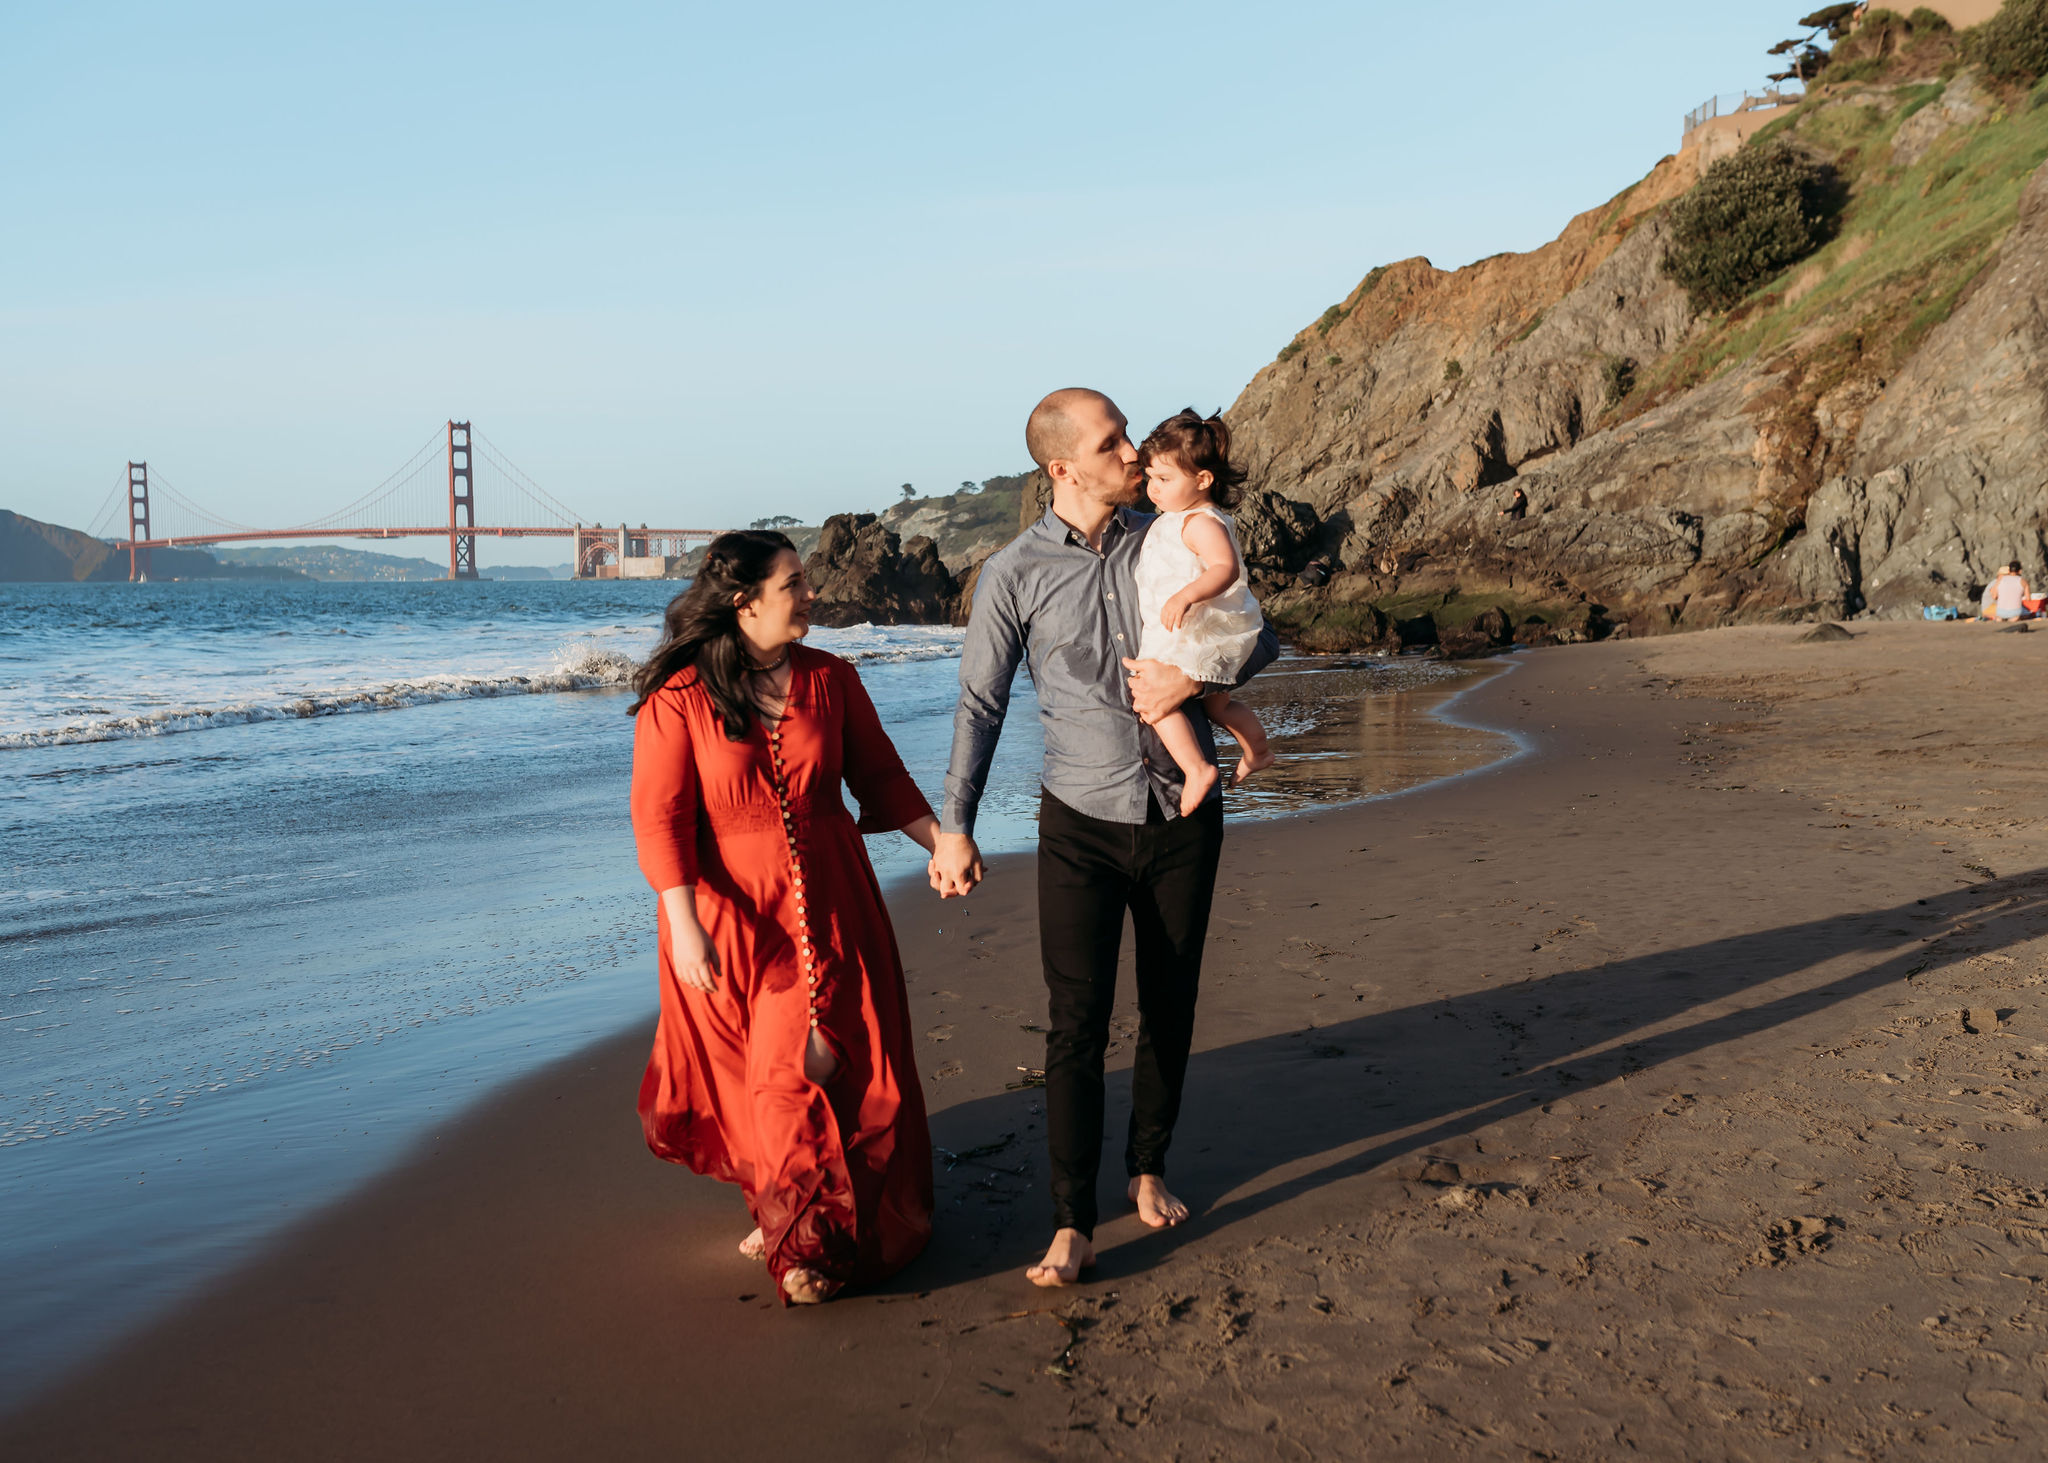 - Another example of how a pop of color can change the entire photo! Dad and Daughter are in very neutral colors while Mom's burnt orange dress contrasts the coastal background and ties in with the Golden Gate Bridge in the background.